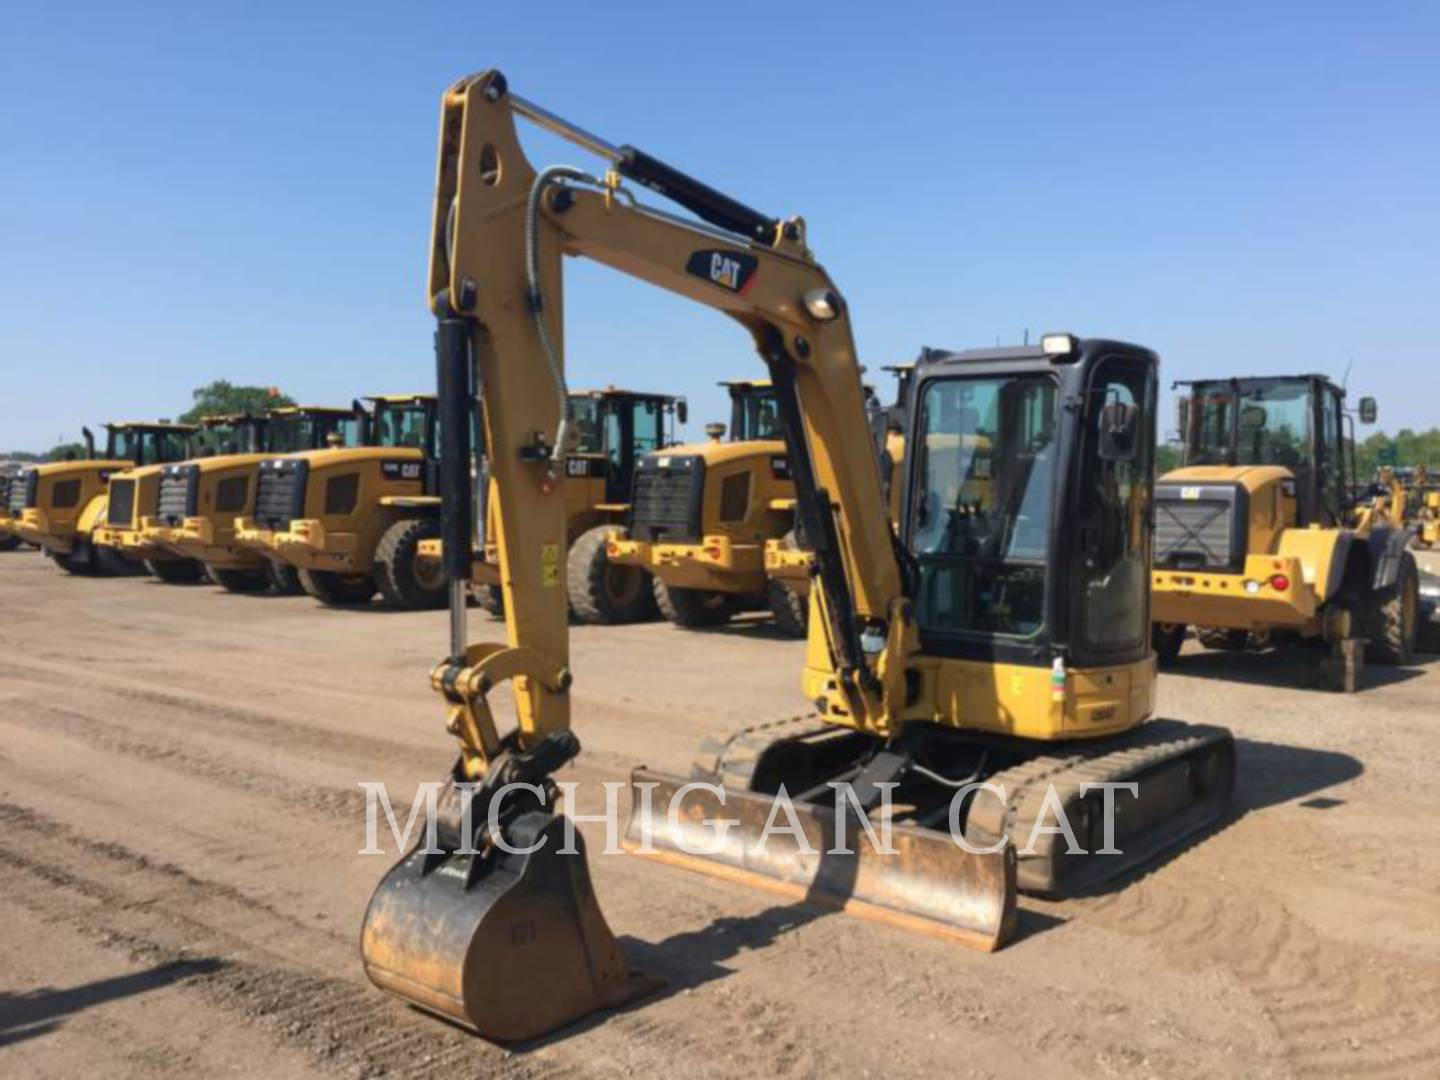 2014 Caterpillar 305.5ECR Excavators and Mini Excavator